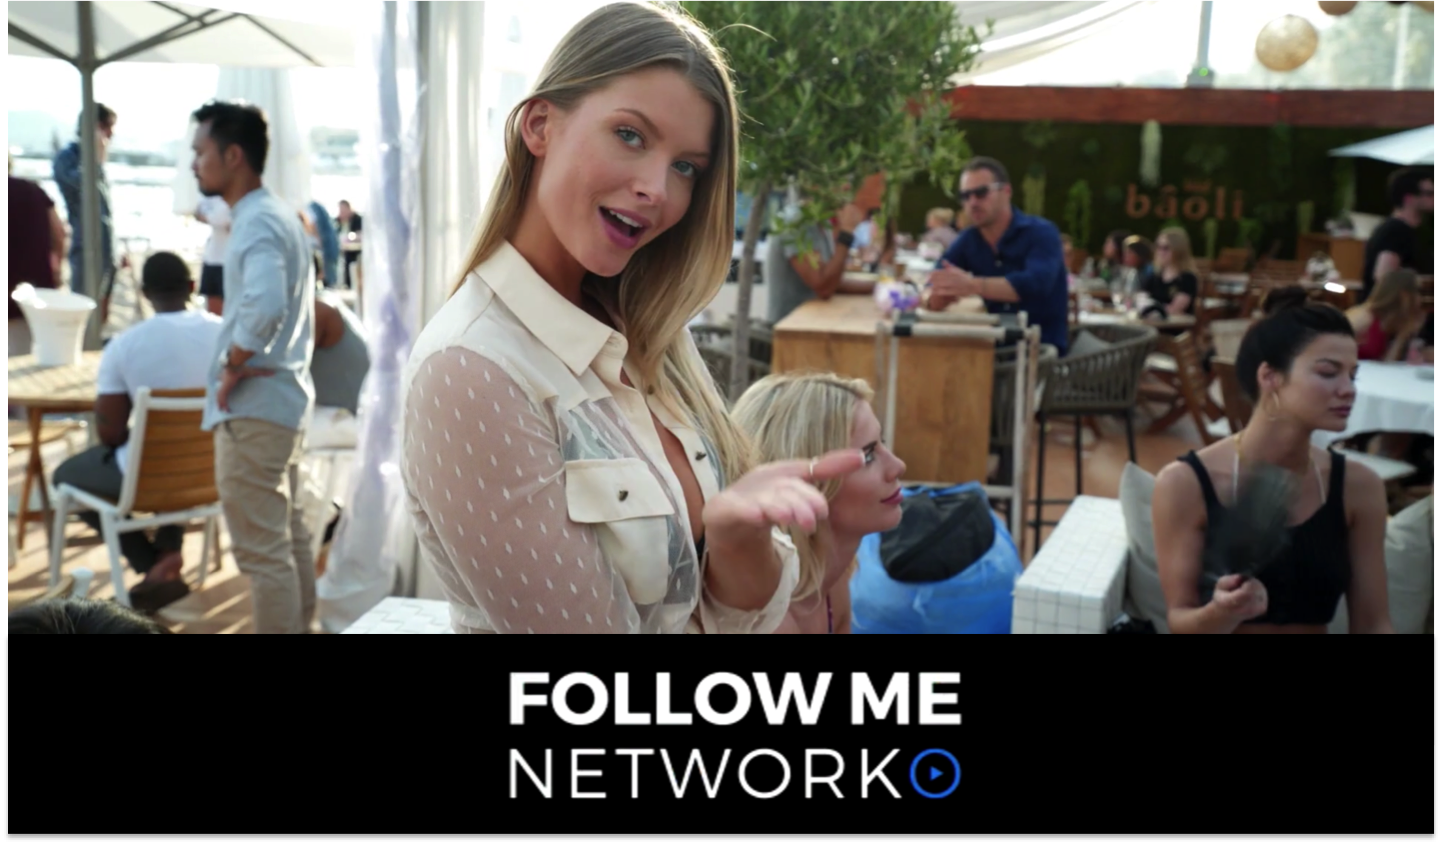 Follow Me Network